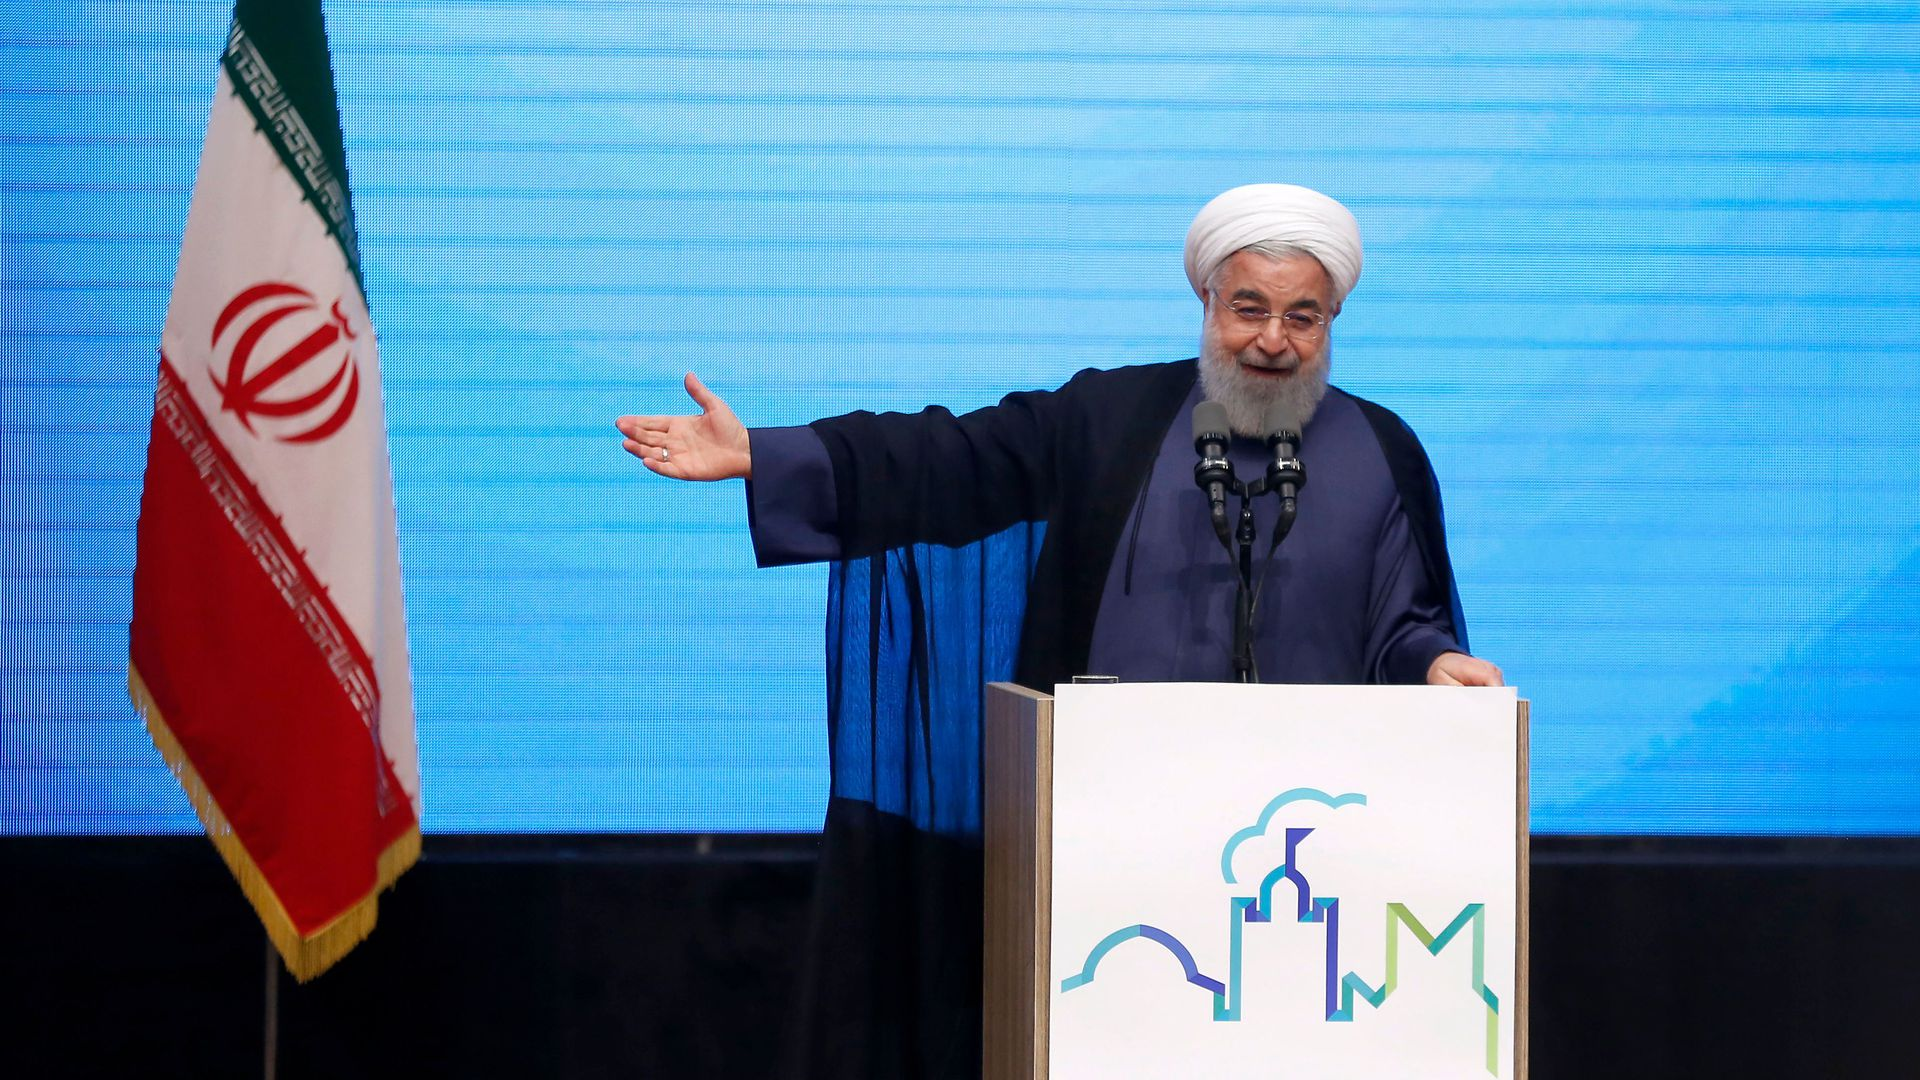 Rouhani pointing to Iran flag